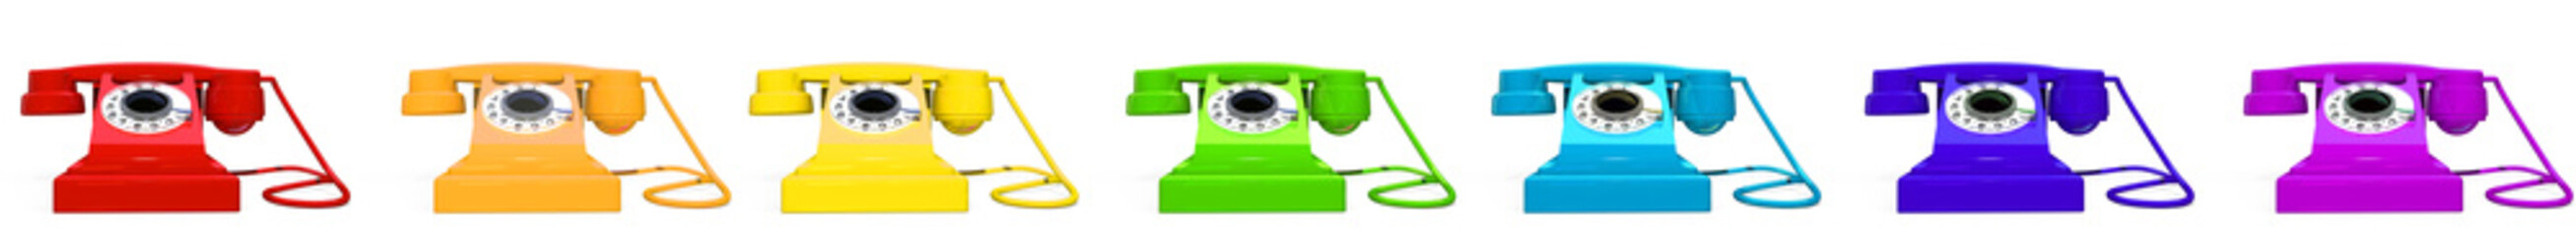 Red retro telephone on white background 3d image